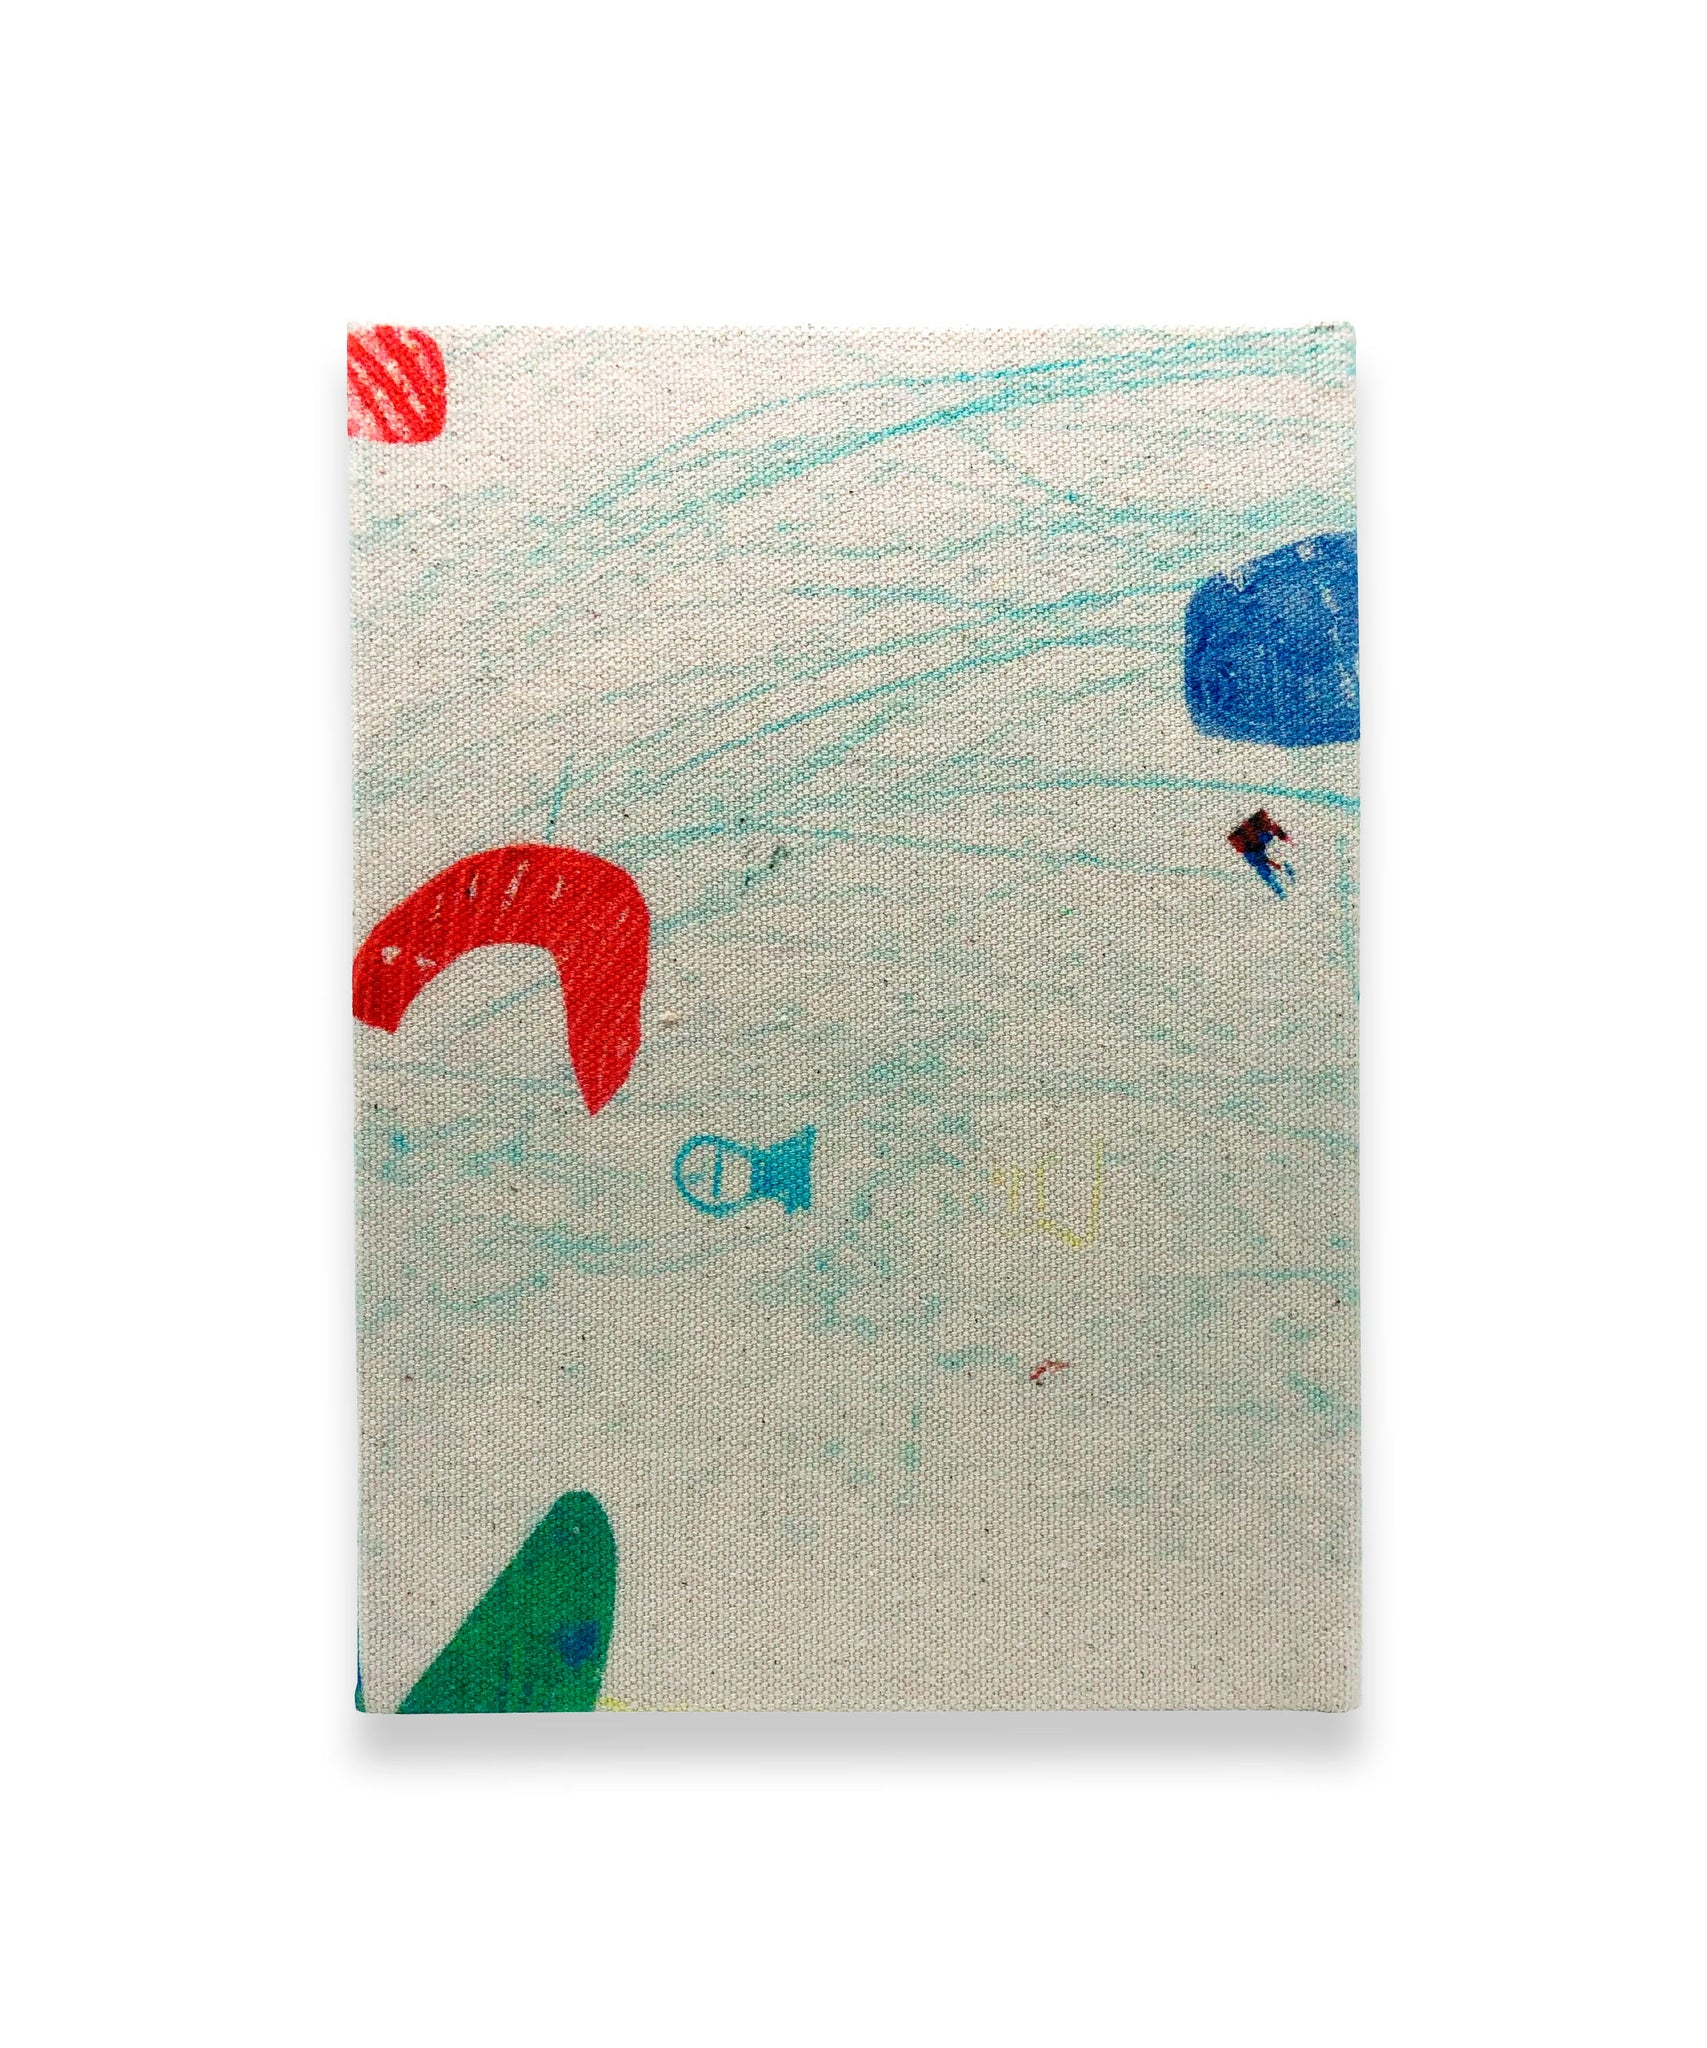 Our Plastic Oceans Notebook - by Lilly